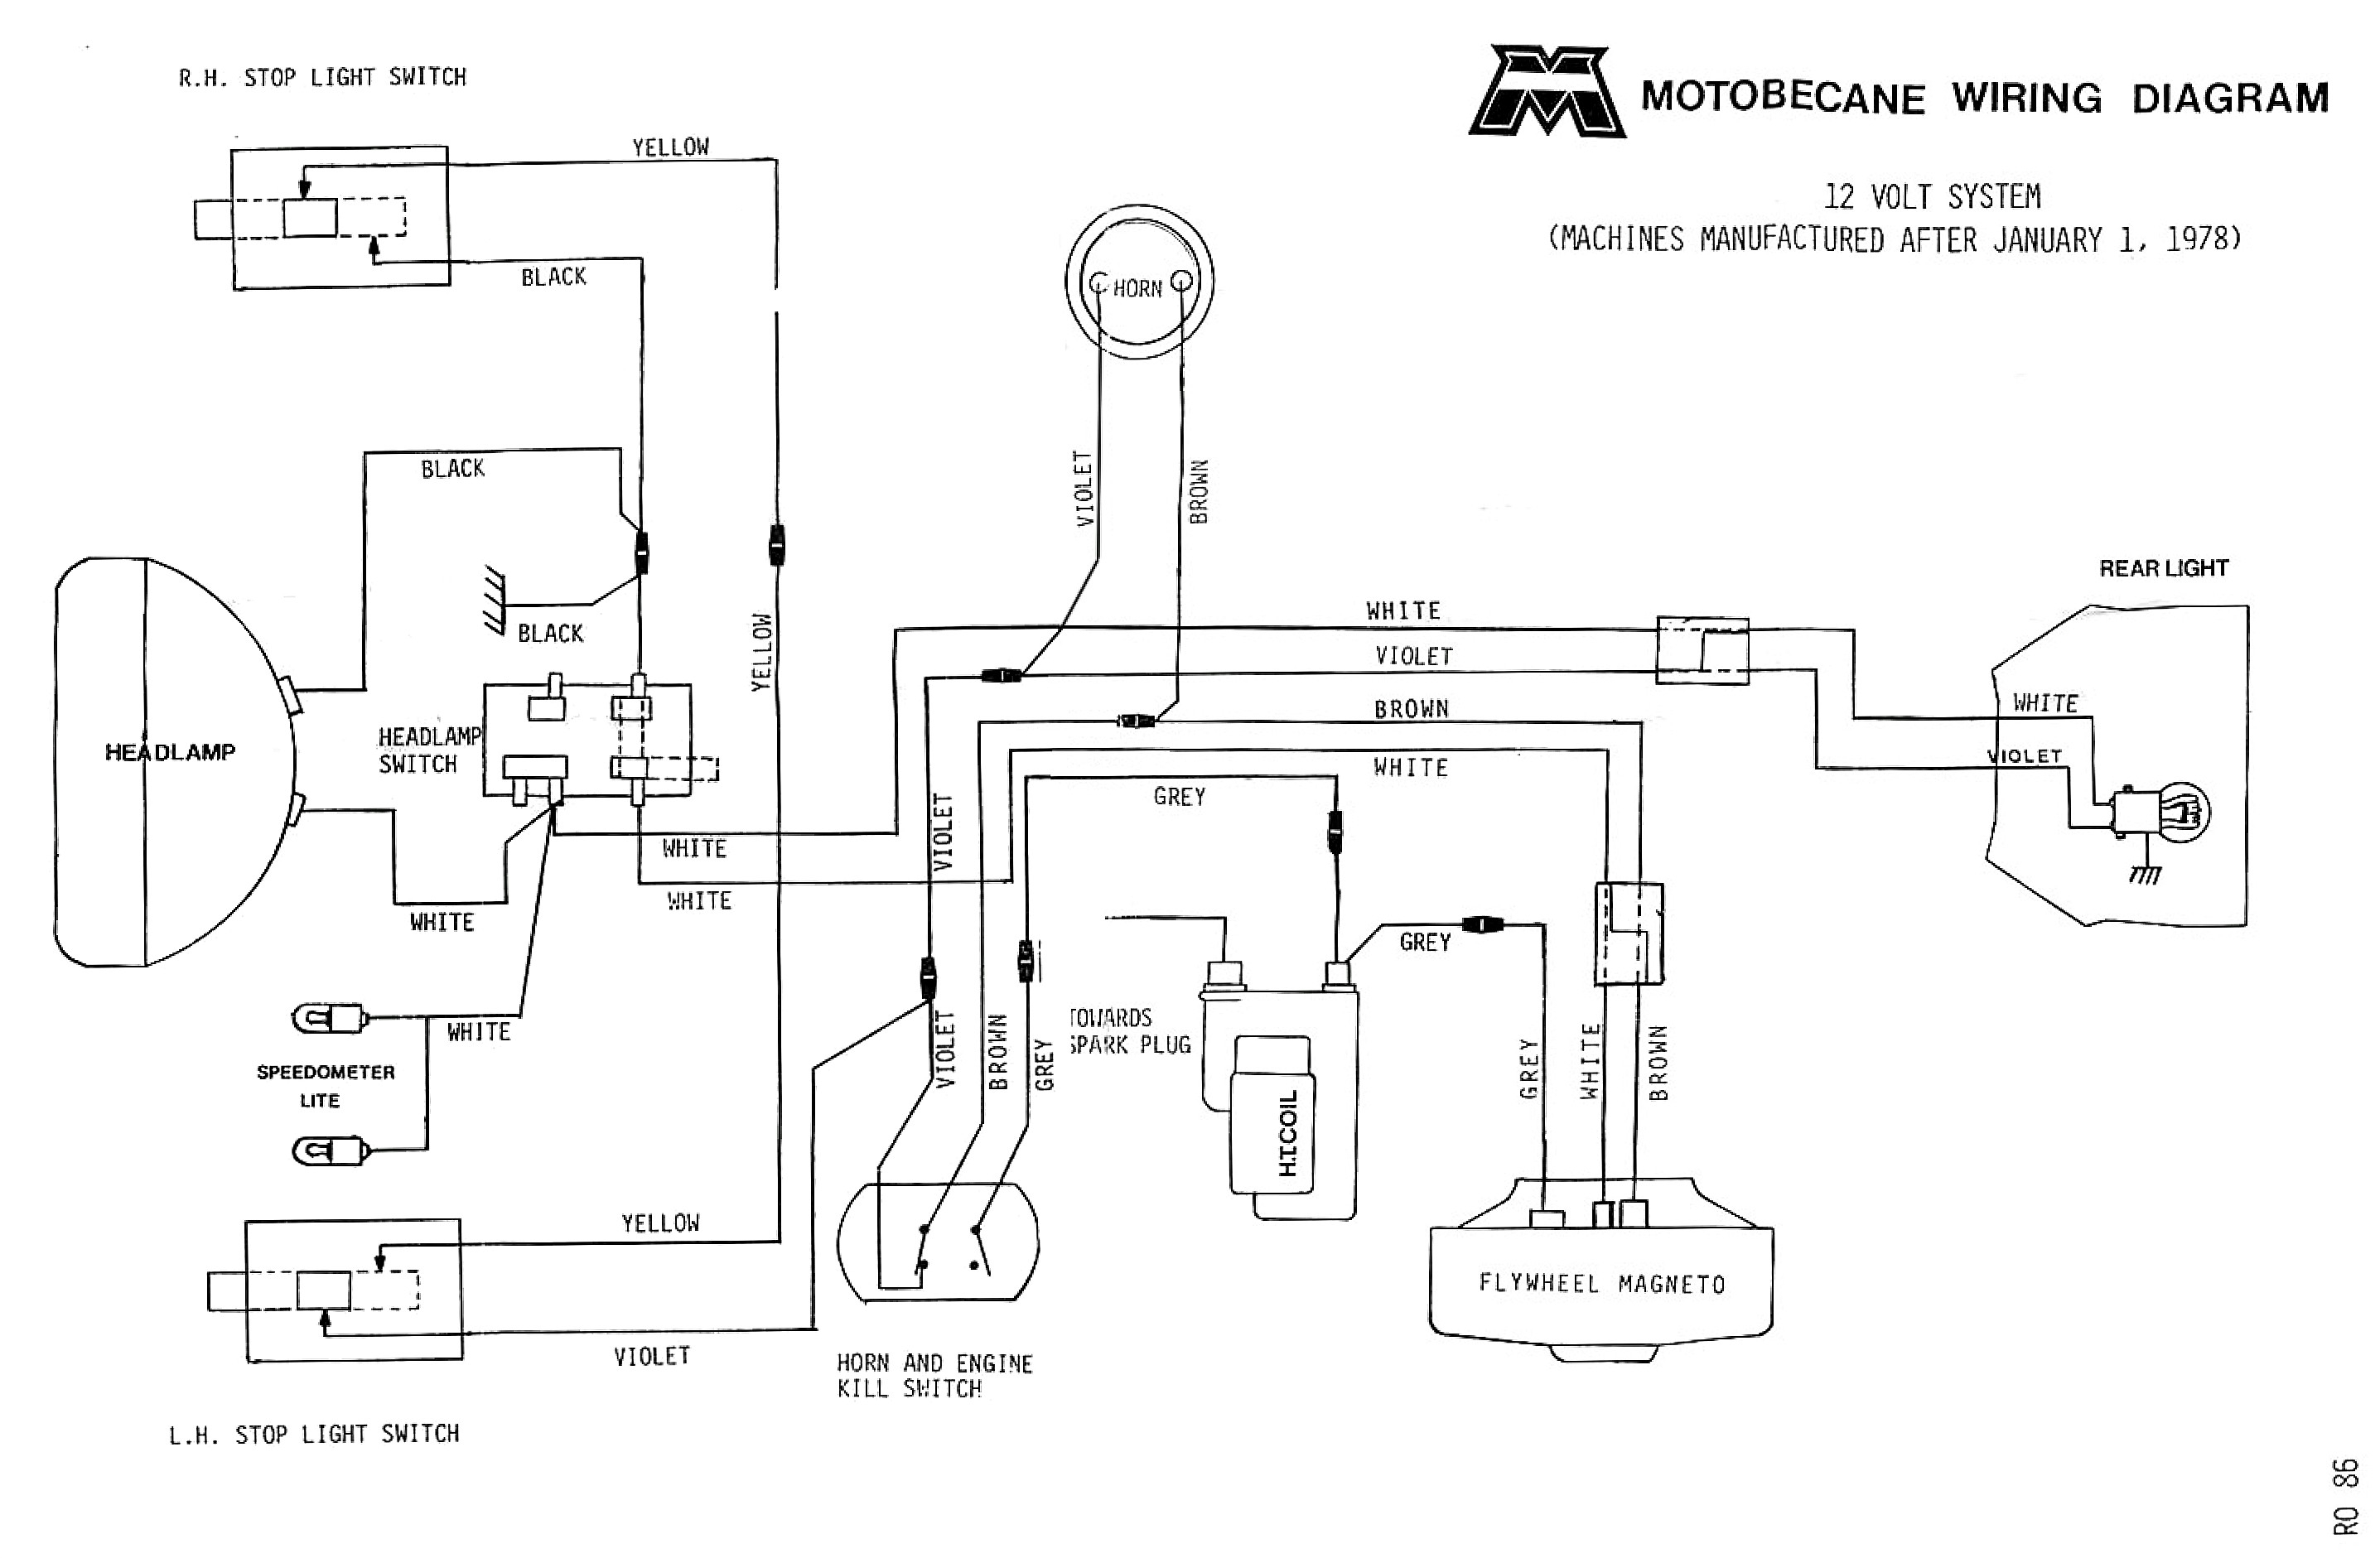 farmall h 12 volt conversion wiring diagram 6 volt to 12 volt conversion wiring diagram beautiful volt wiring ford 8n distributor diagram 12m 1952 8n ford tractor wiring diagram best wiring library